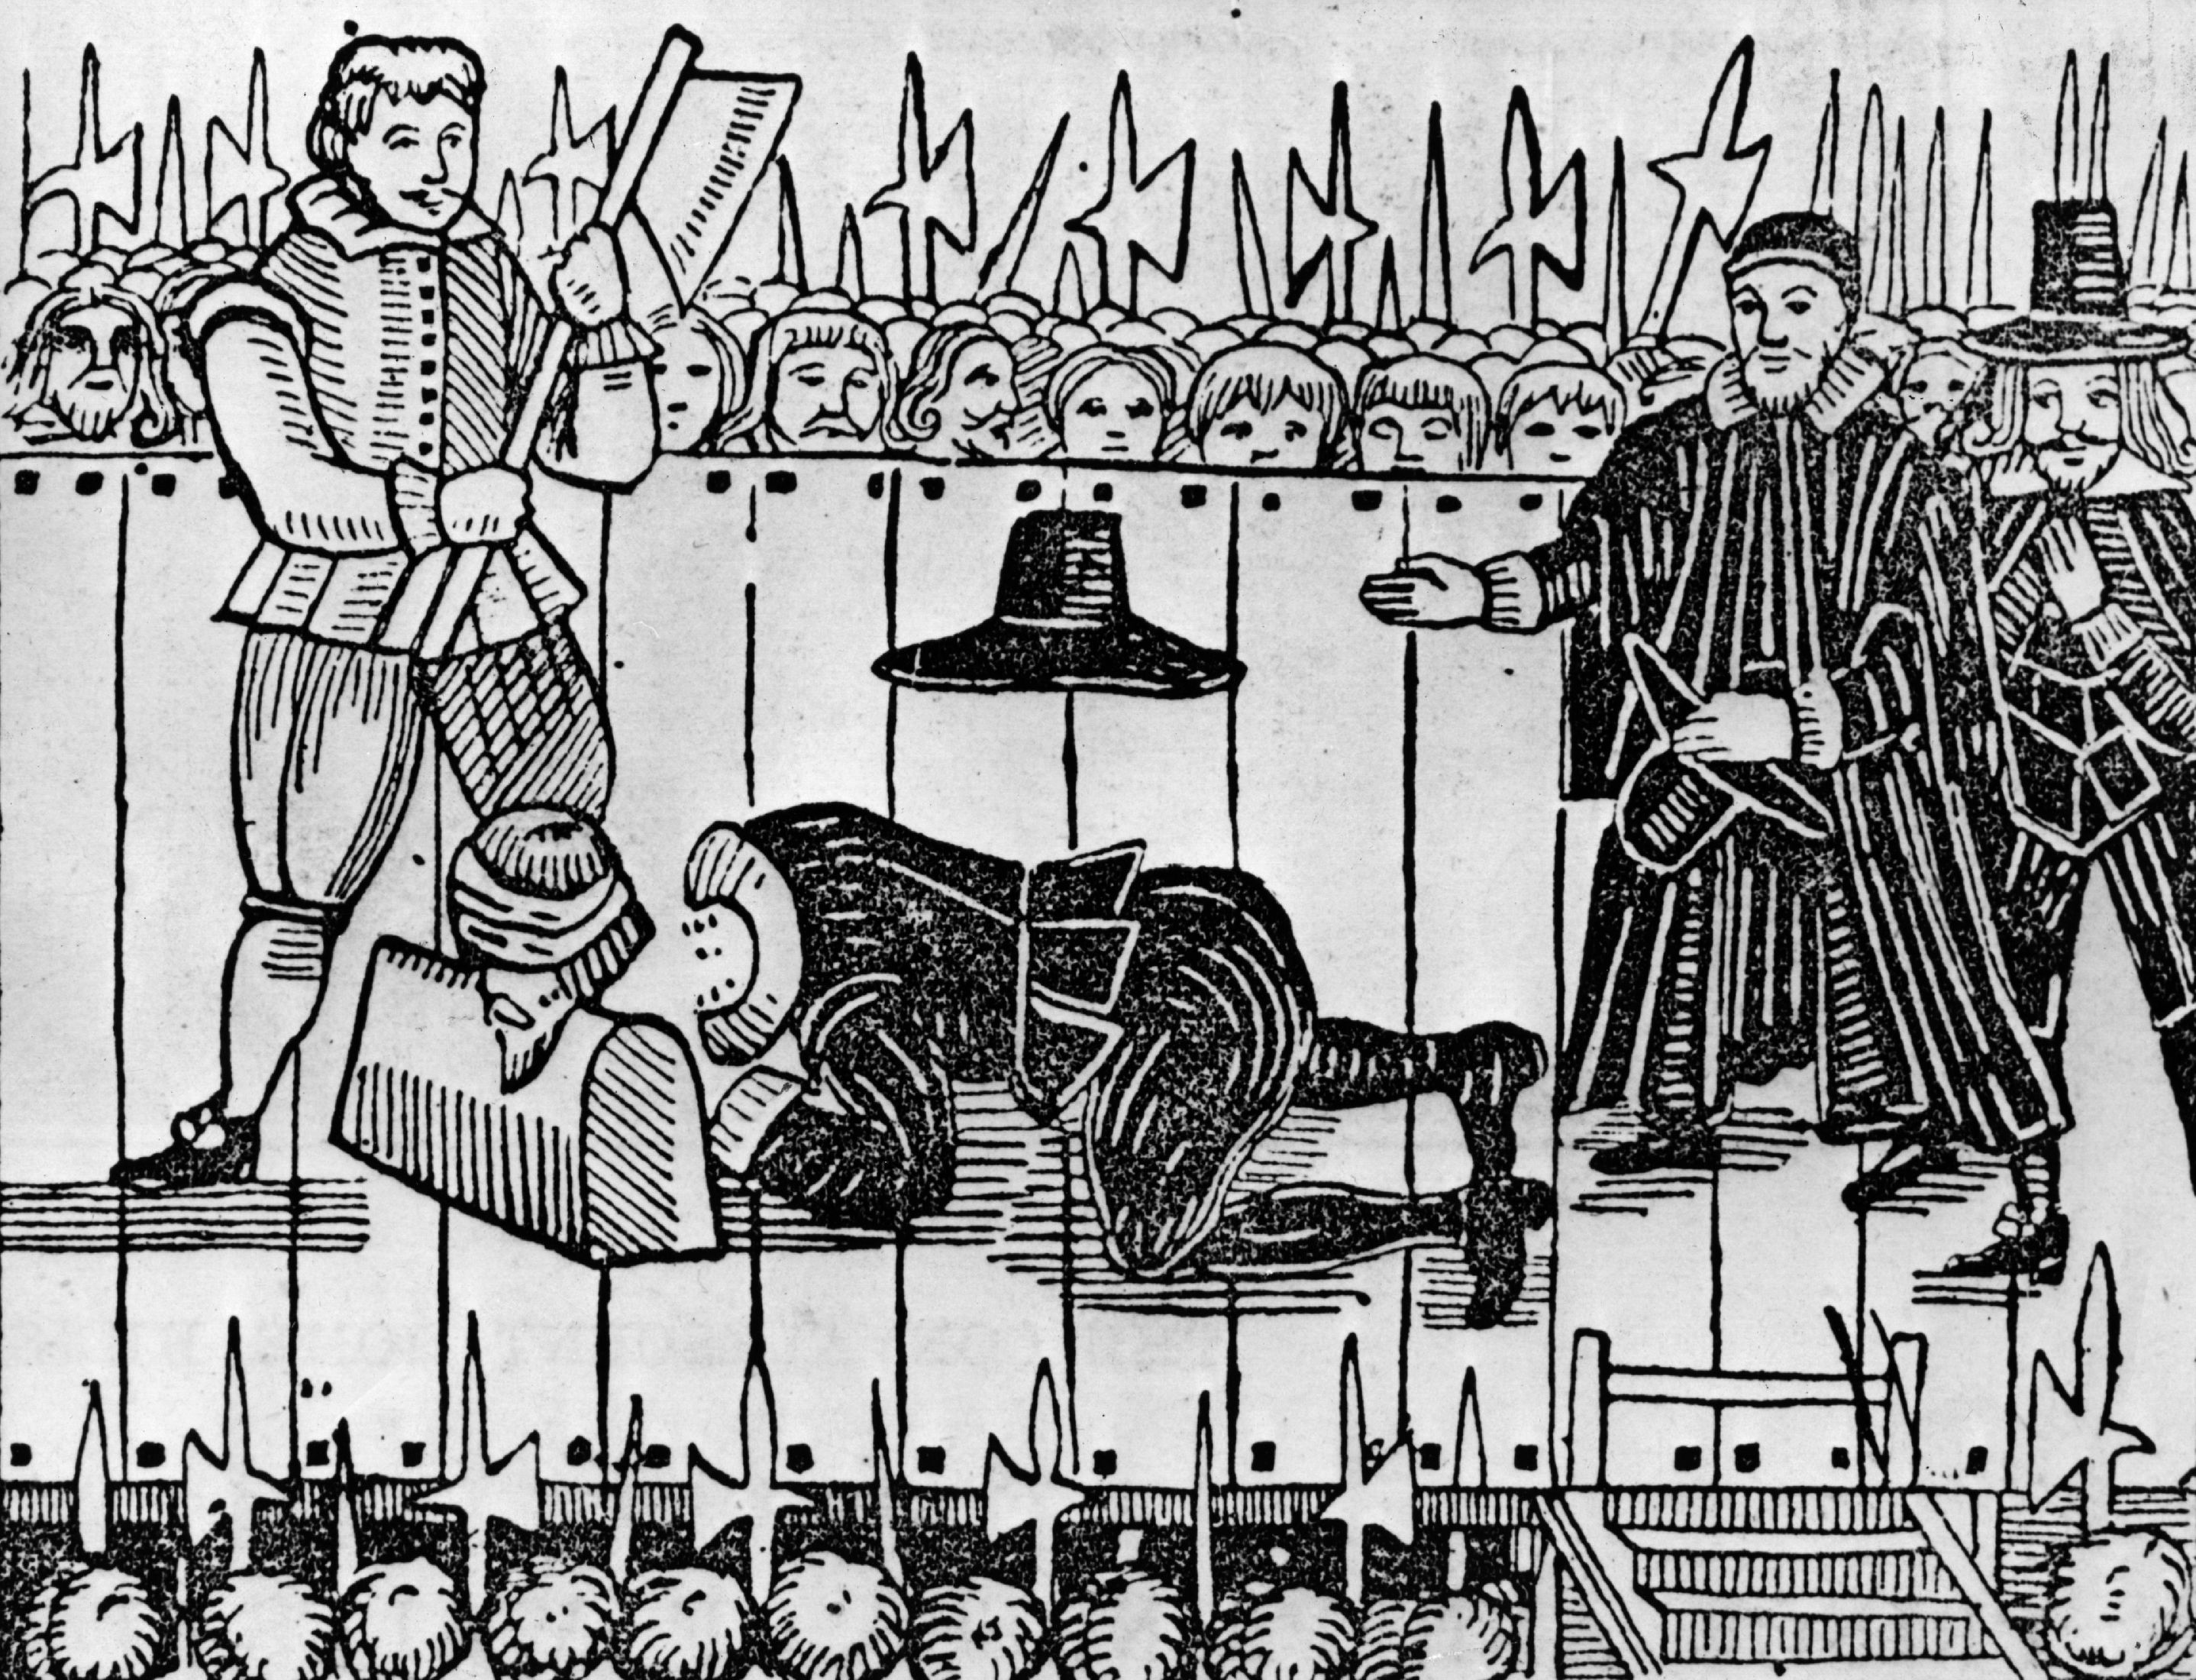 """For those of noble birth who were condemned to die, execution by beheading (which was considered the least brutal method of execution) was used until the 18th century,"" says Seal. (Hulton Archive/Getty Images)"